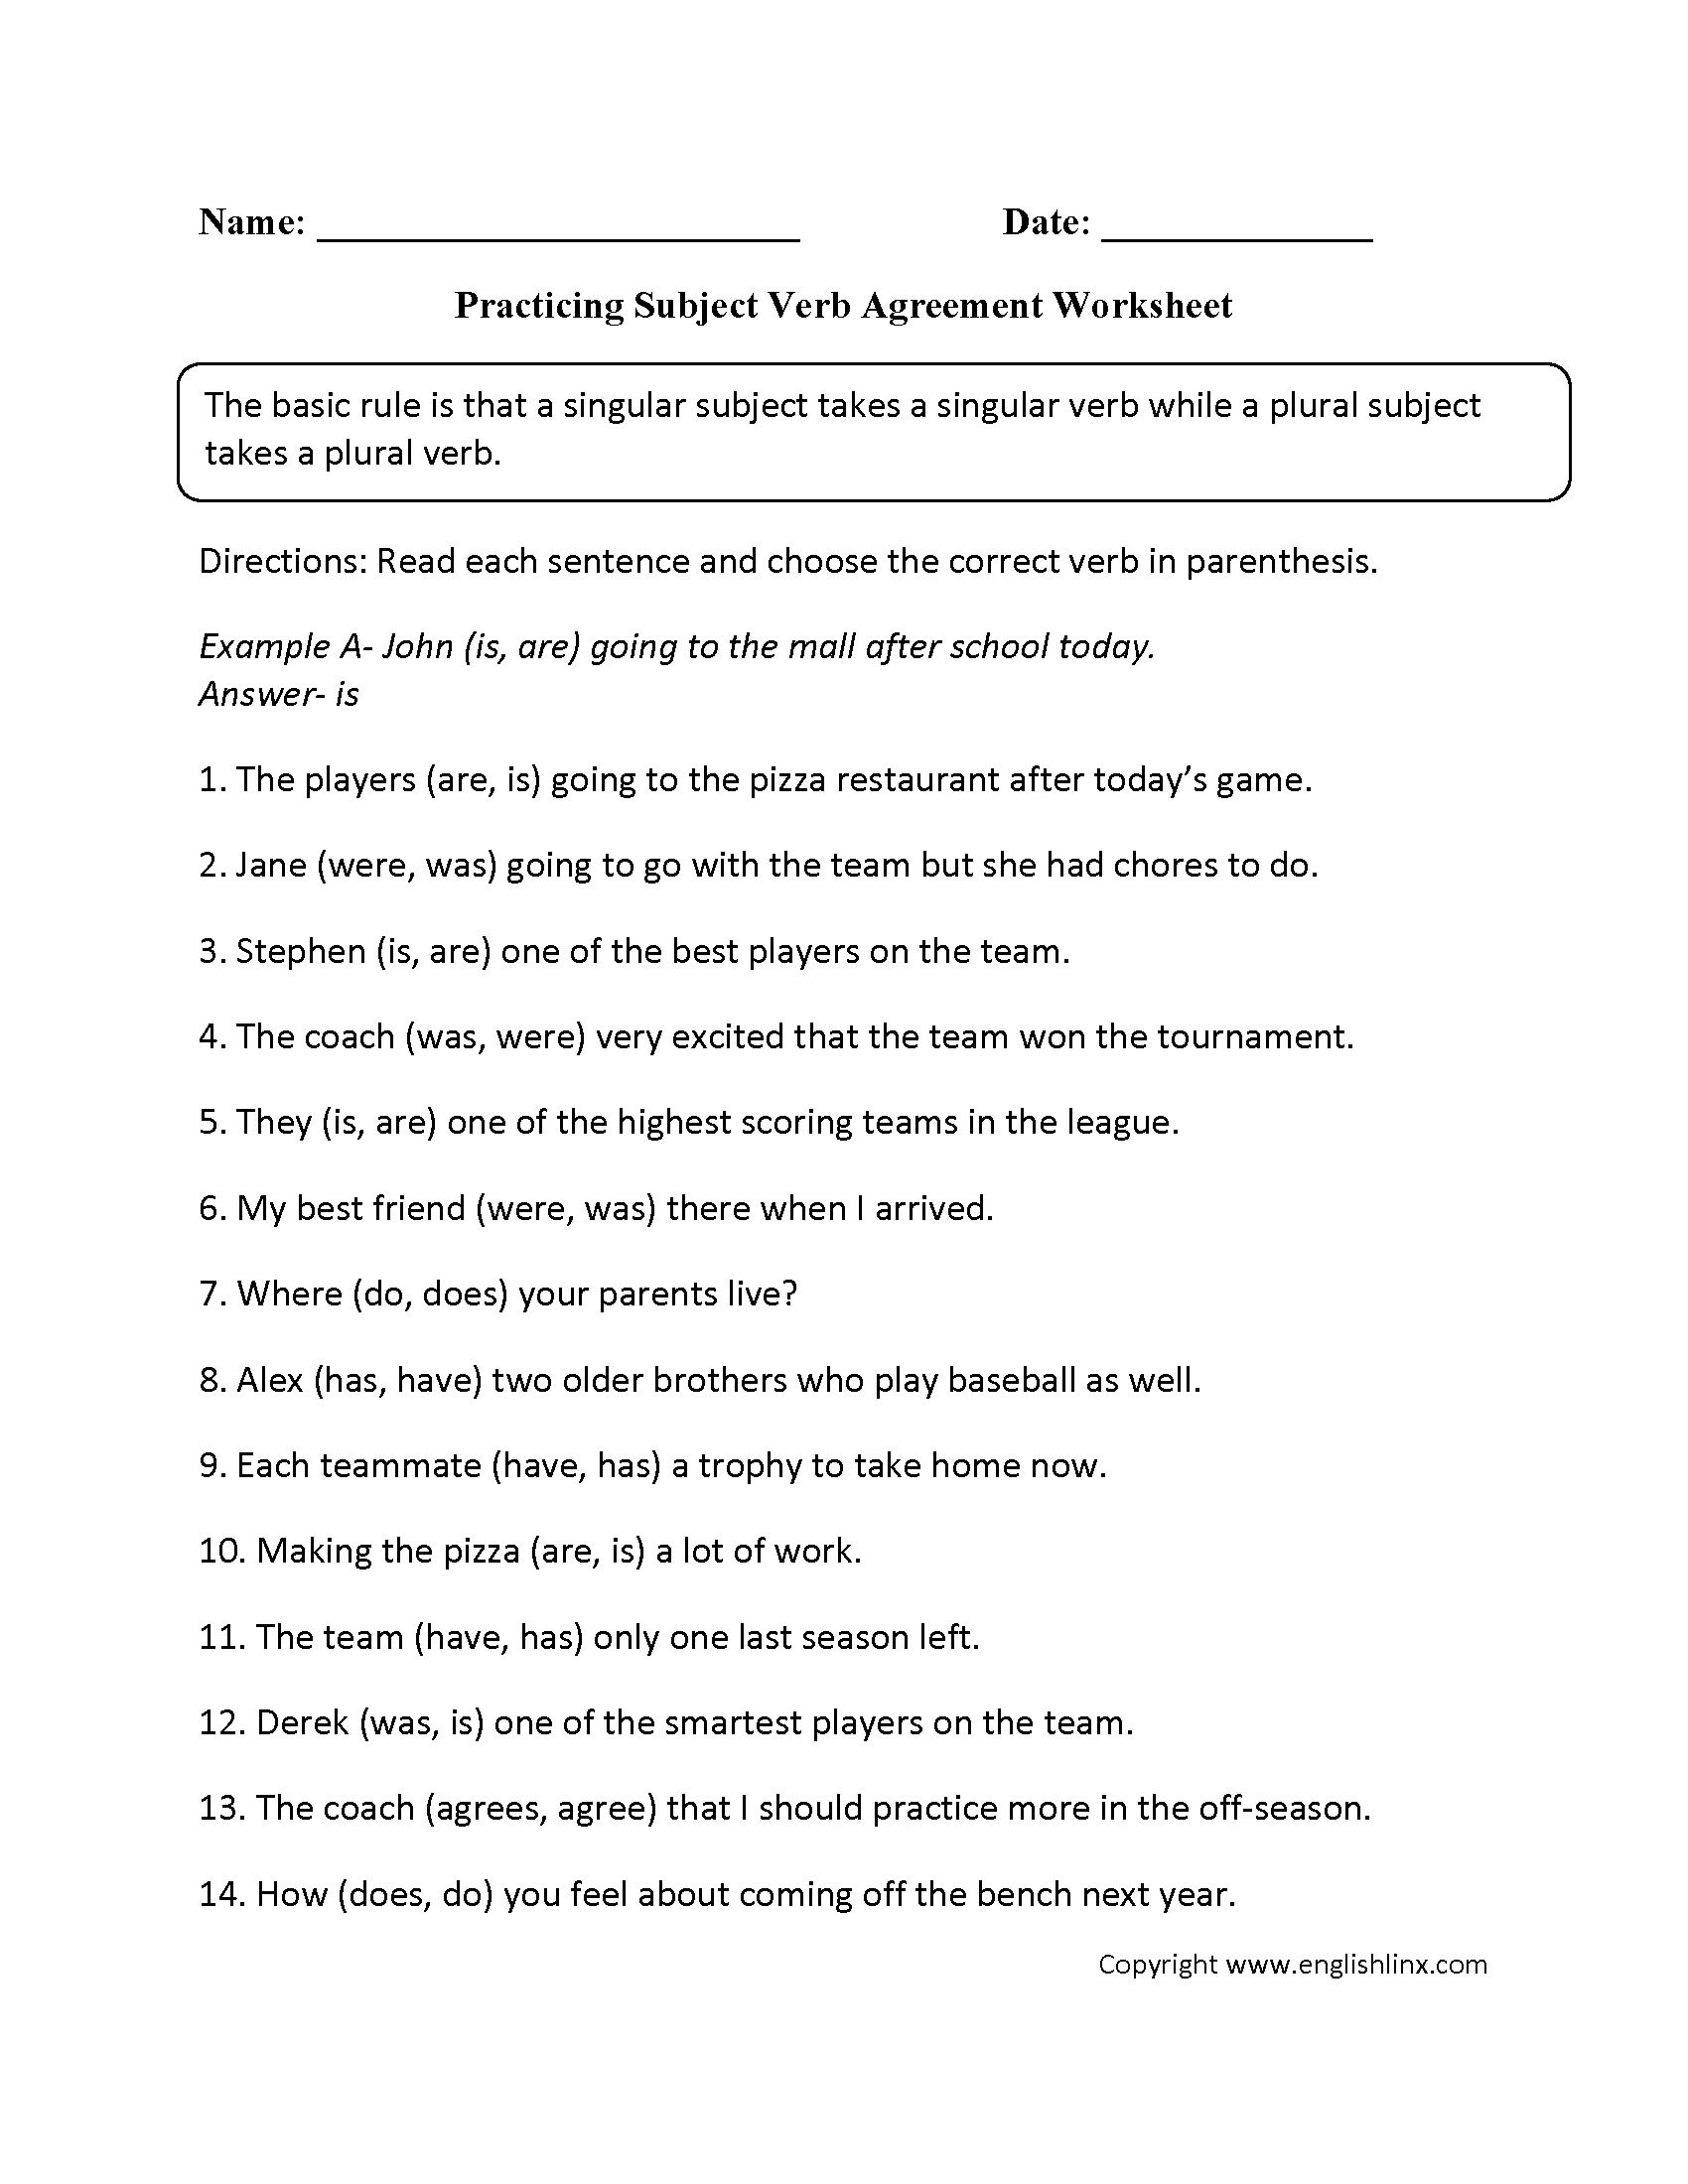 worksheet Subject Verb Agreement Worksheets With Answers word usage worksheets subject verb agreement worksheets